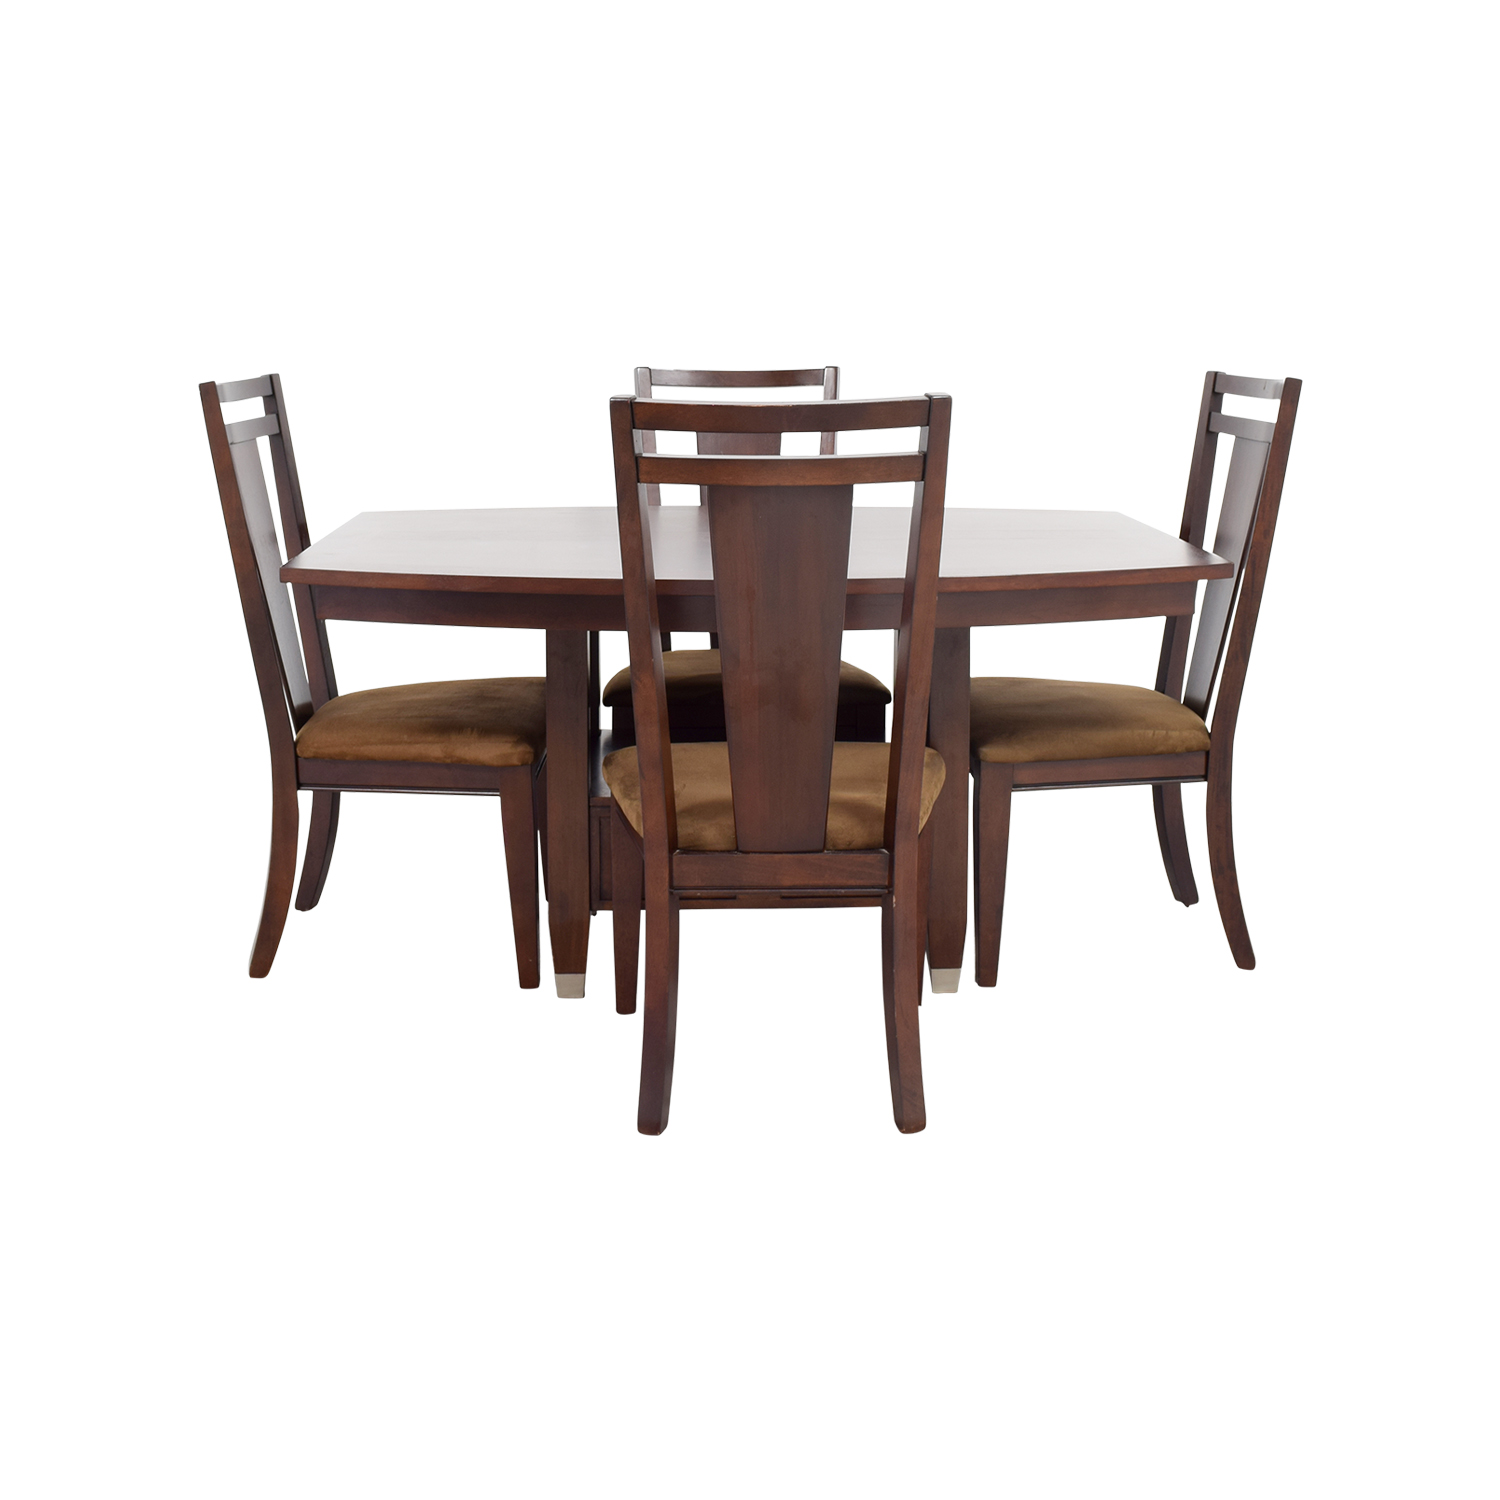 Broyhill Dining Room Table: Broyhill Furniture Broyhill Wood Dining Table